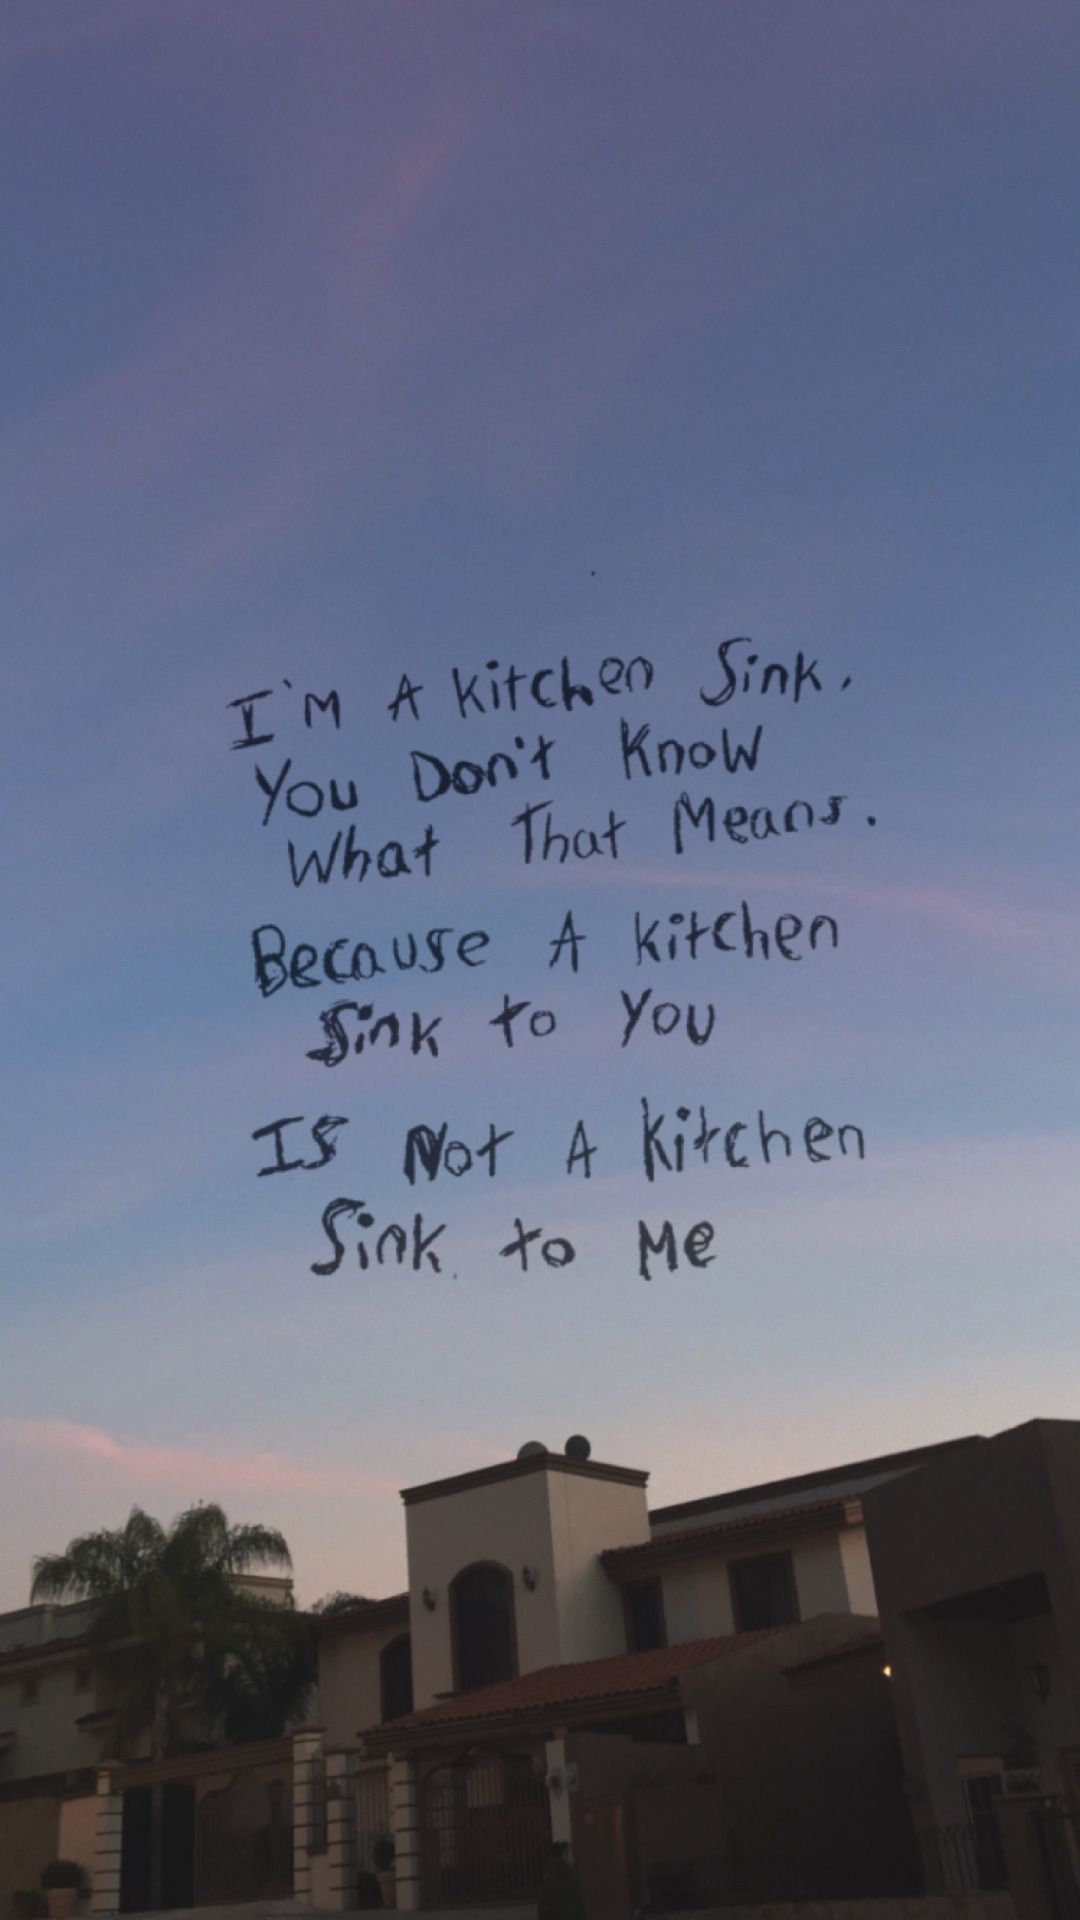 Kitchen Sink Twenty One Pilots Okay Friend Kitchen Sink  Twenty Øne Piløts  Twenty One